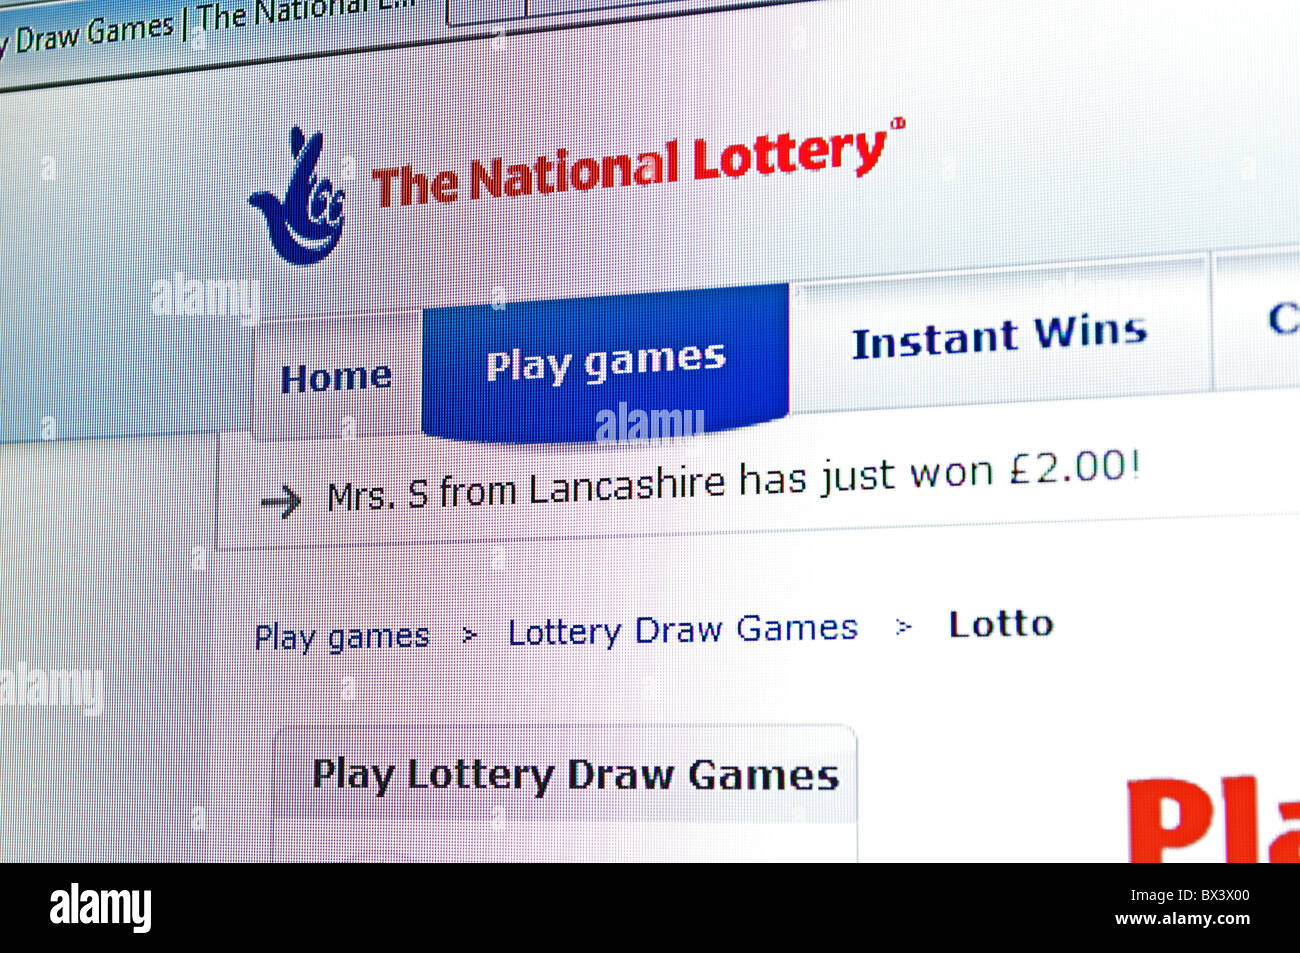 the national lottery web page - Stock Image